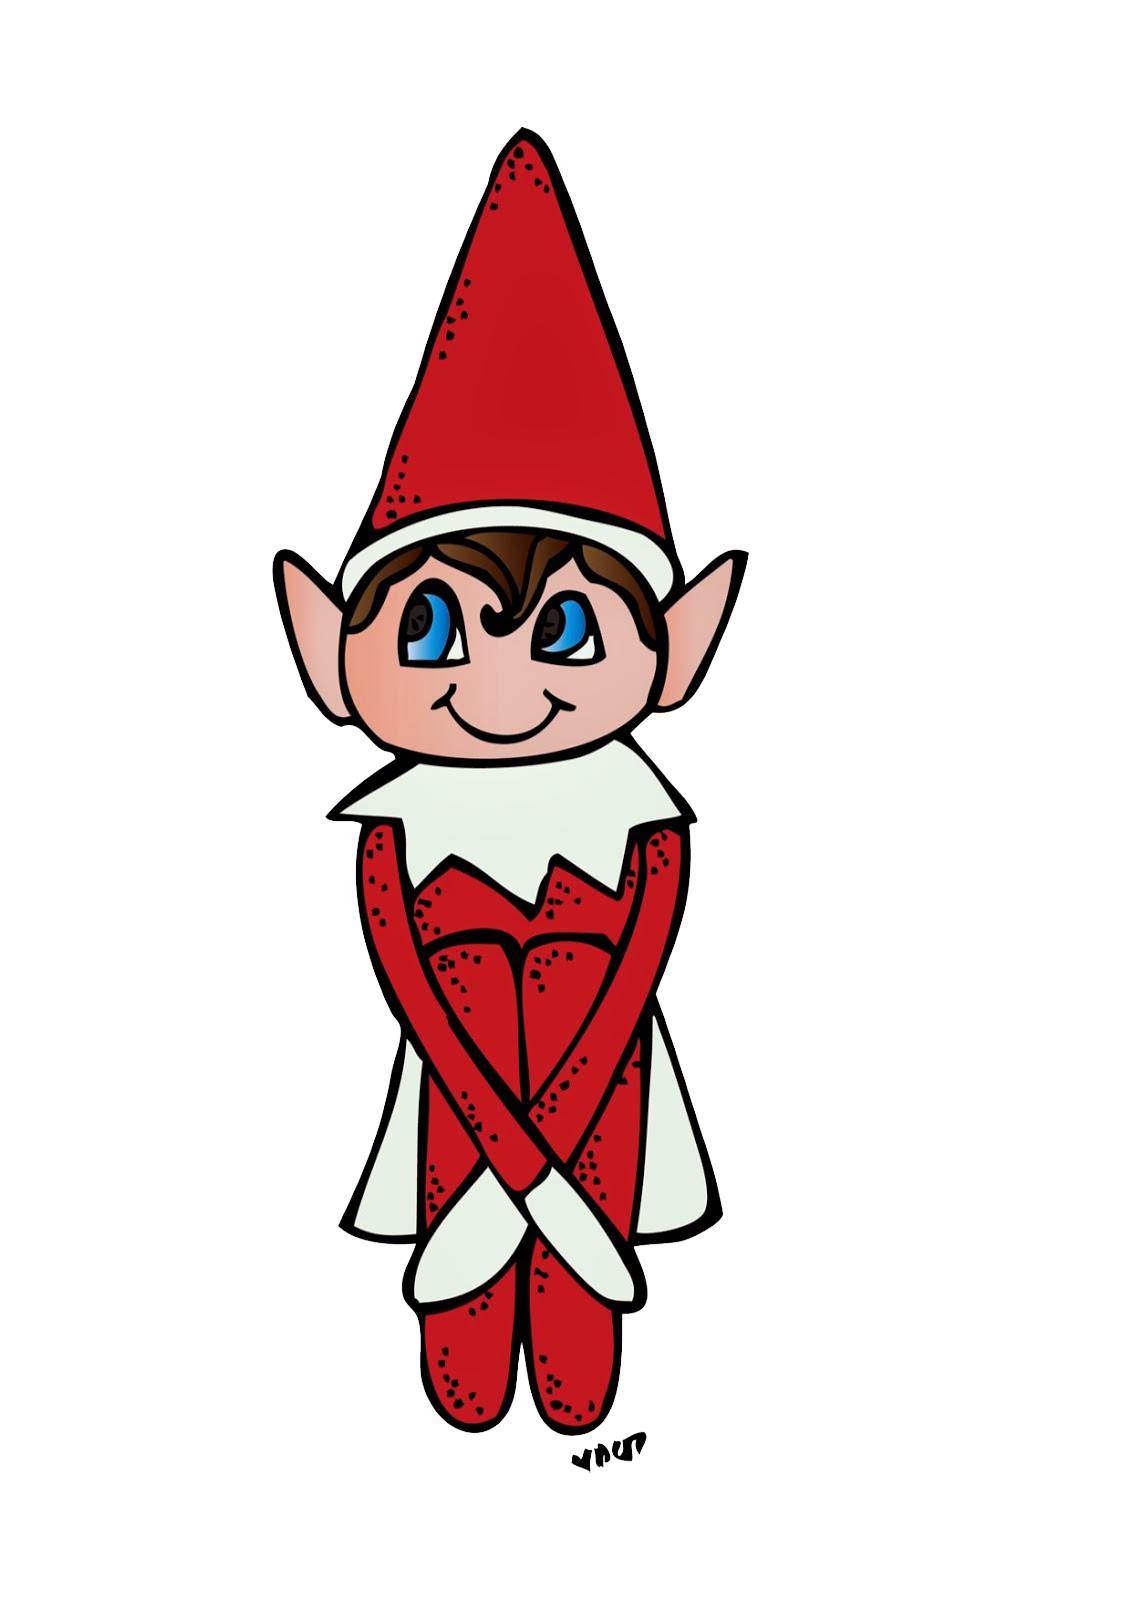 Elf house clipart svg library Elf on the Shelf Scavenger Hunt | Rio Blanco Herald Times | Serving ... svg library